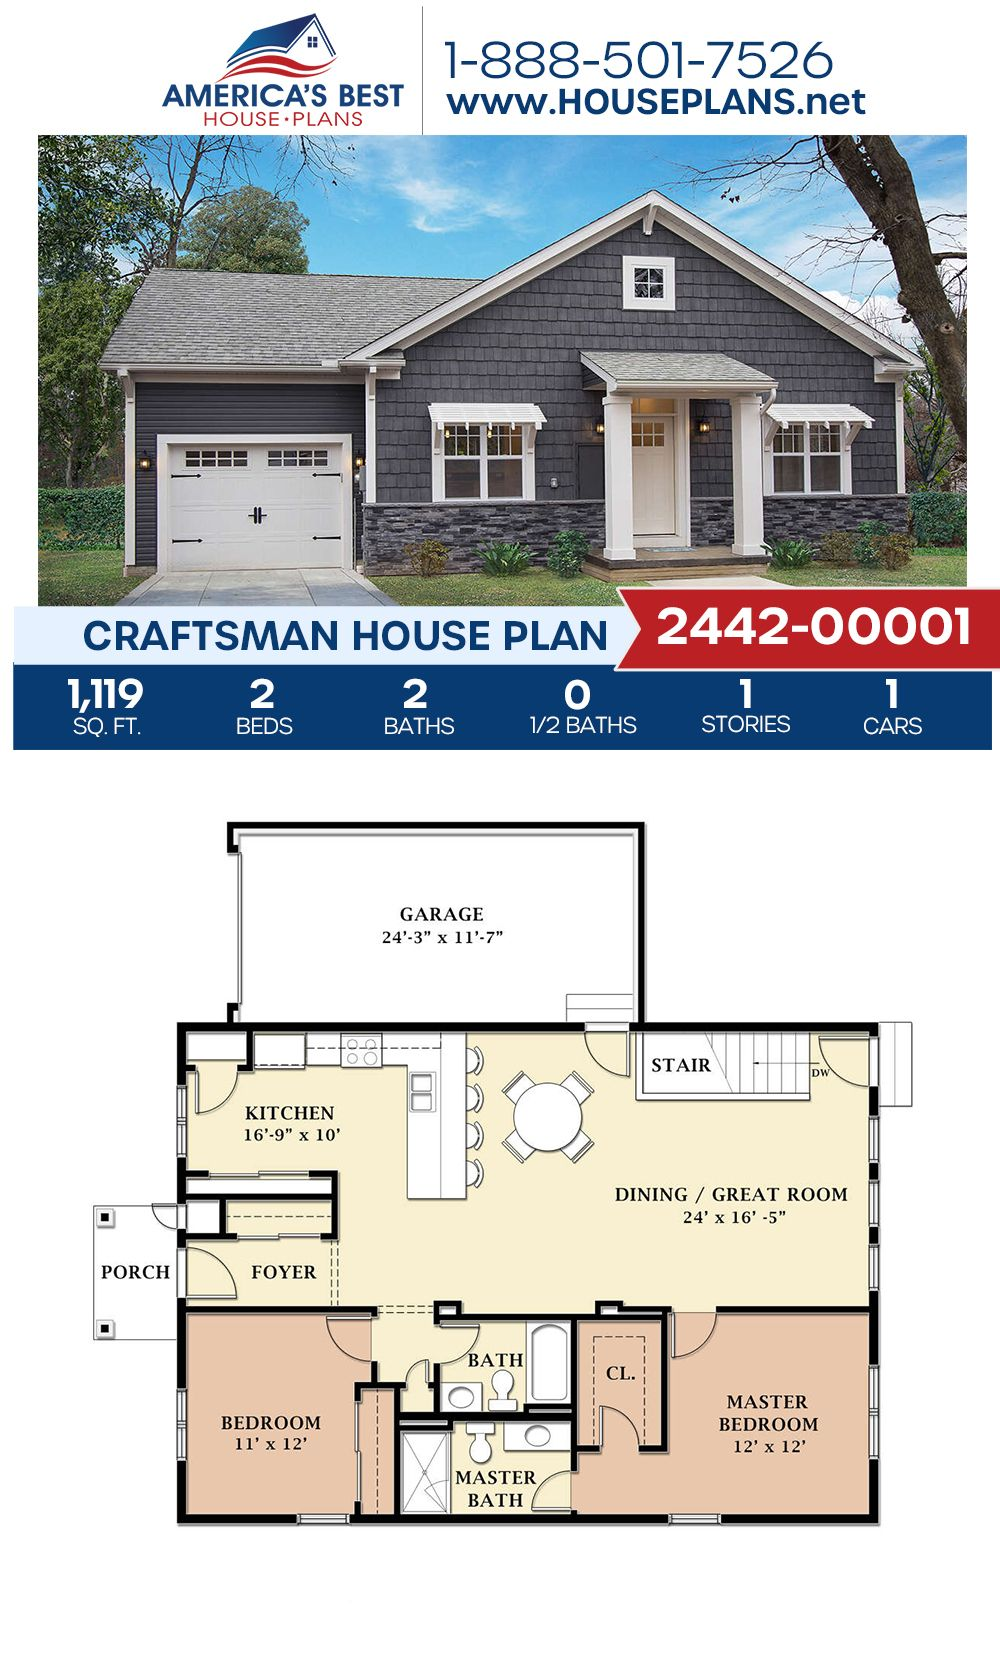 House Plan 2442 00001 Craftsman Plan 1 119 Square Feet 2 Bedrooms 2 Bathrooms In 2020 Craftsman House Plans Small House Floor Plans Sims House Plans